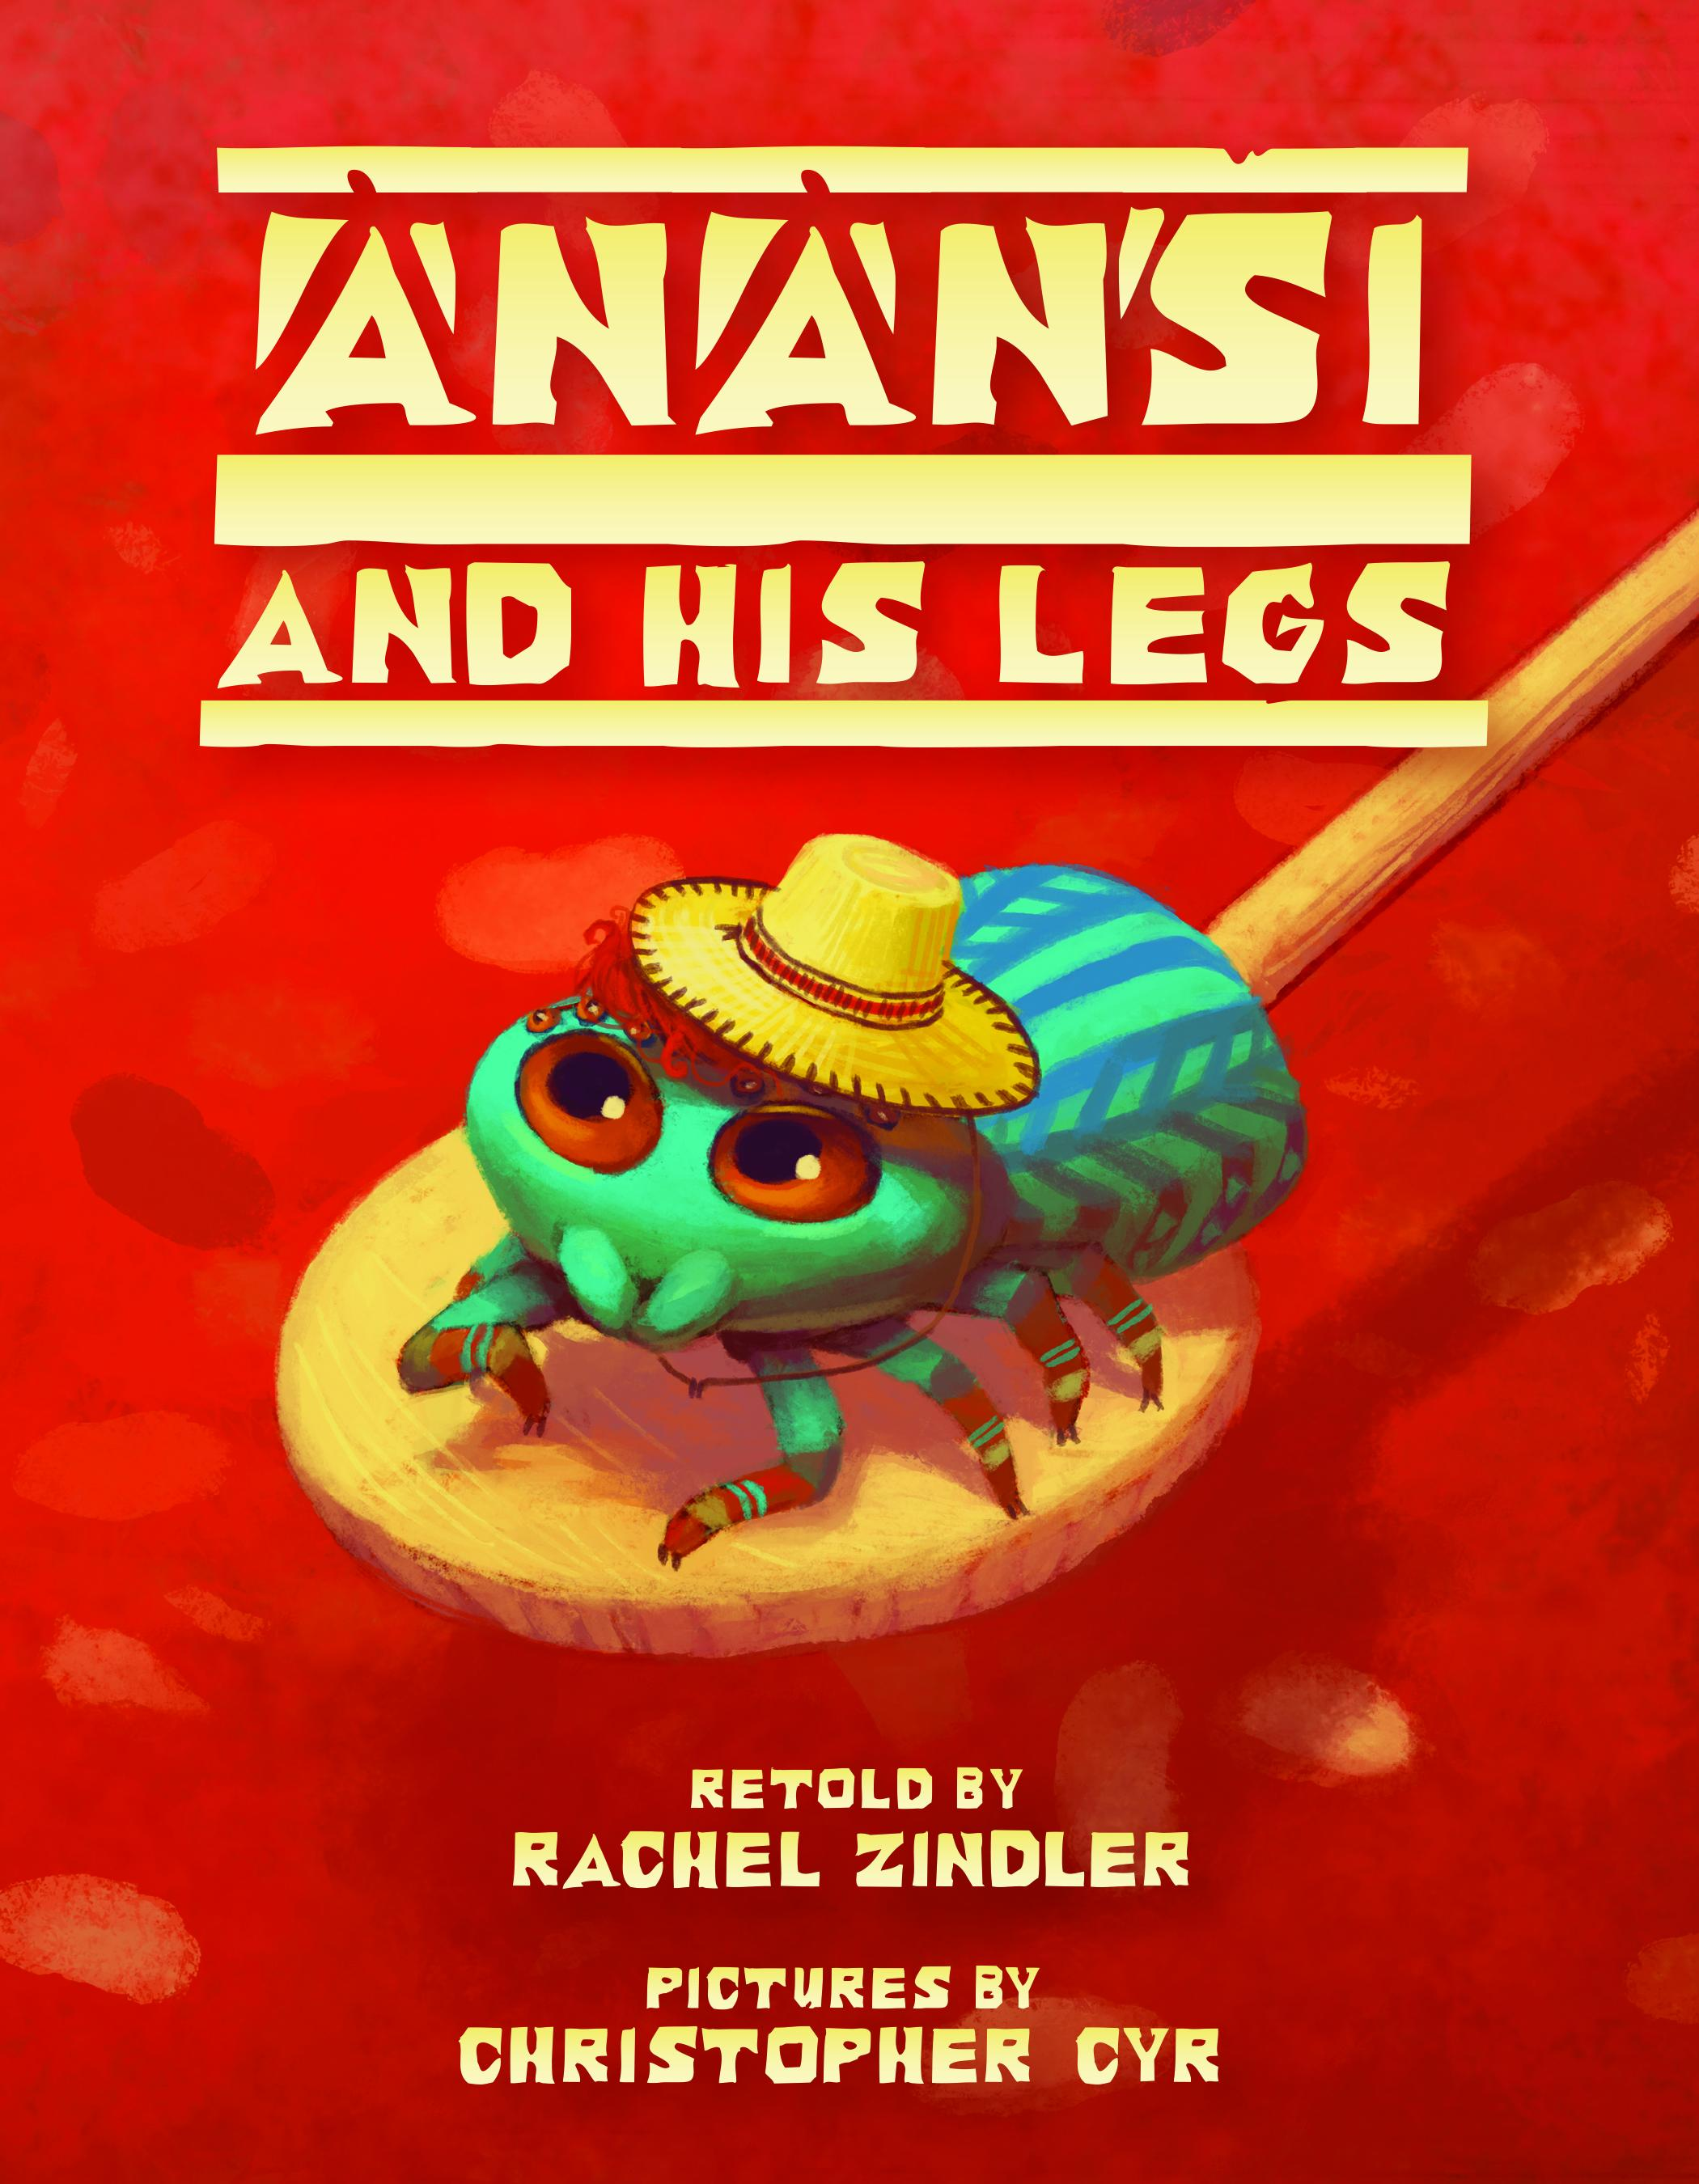 Anasi and His Legs book cover with green beetle wearing a hat on a spoon.